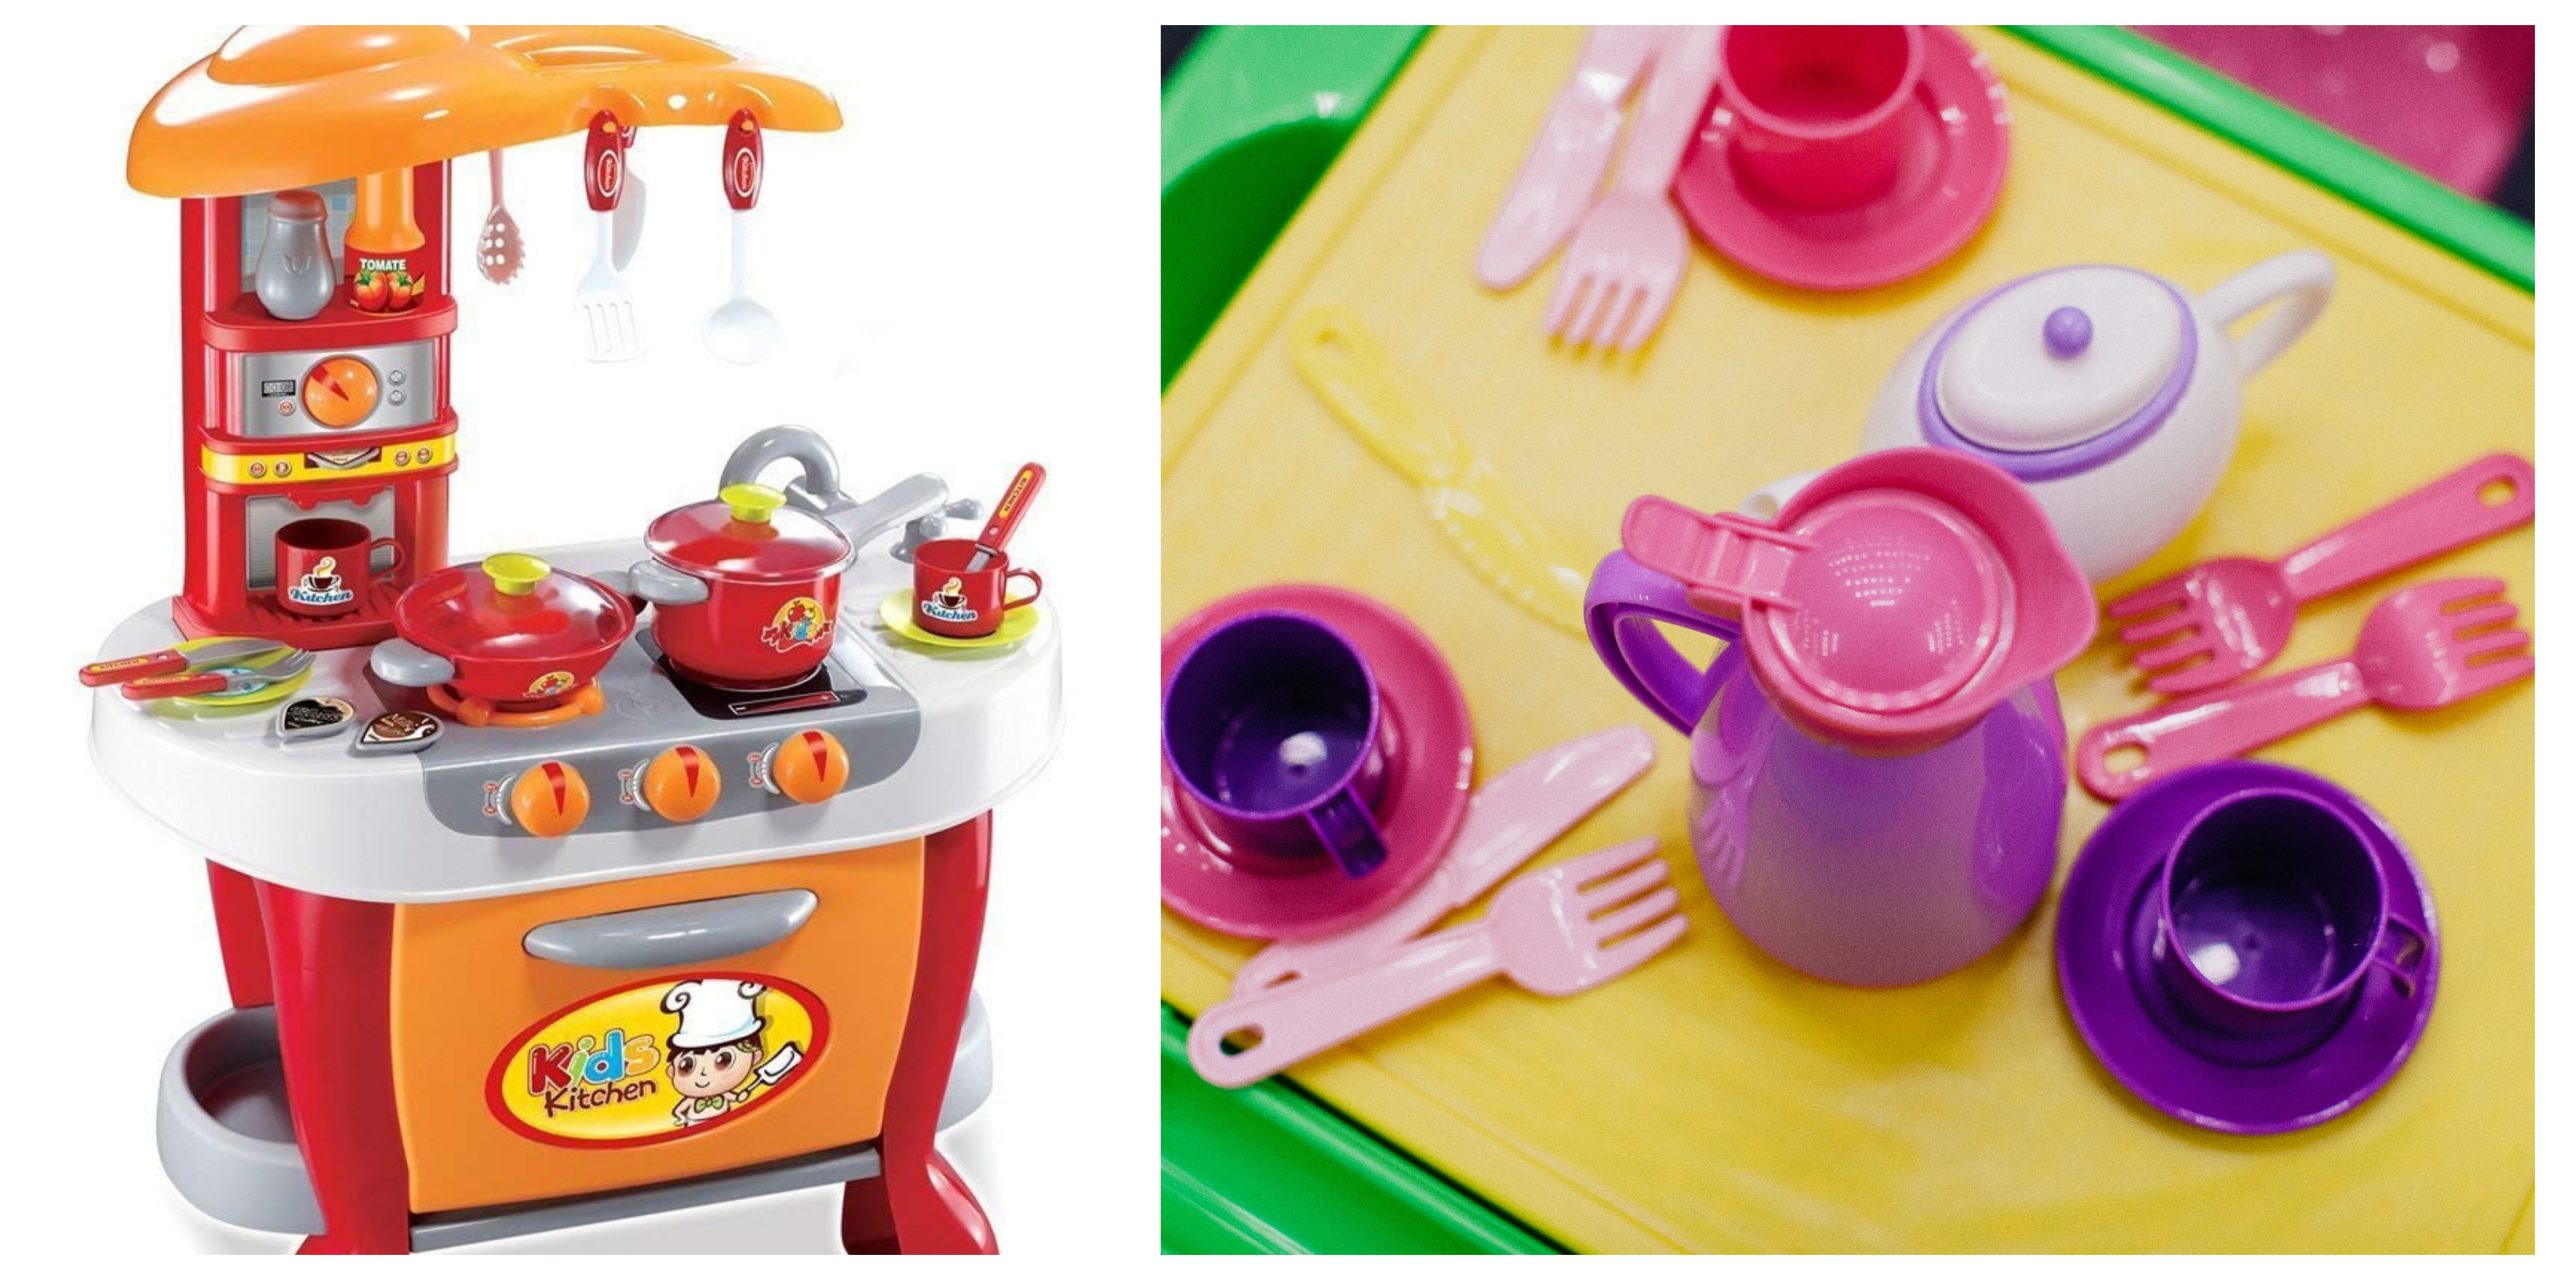 Best Kitchen Sets for Kids in India